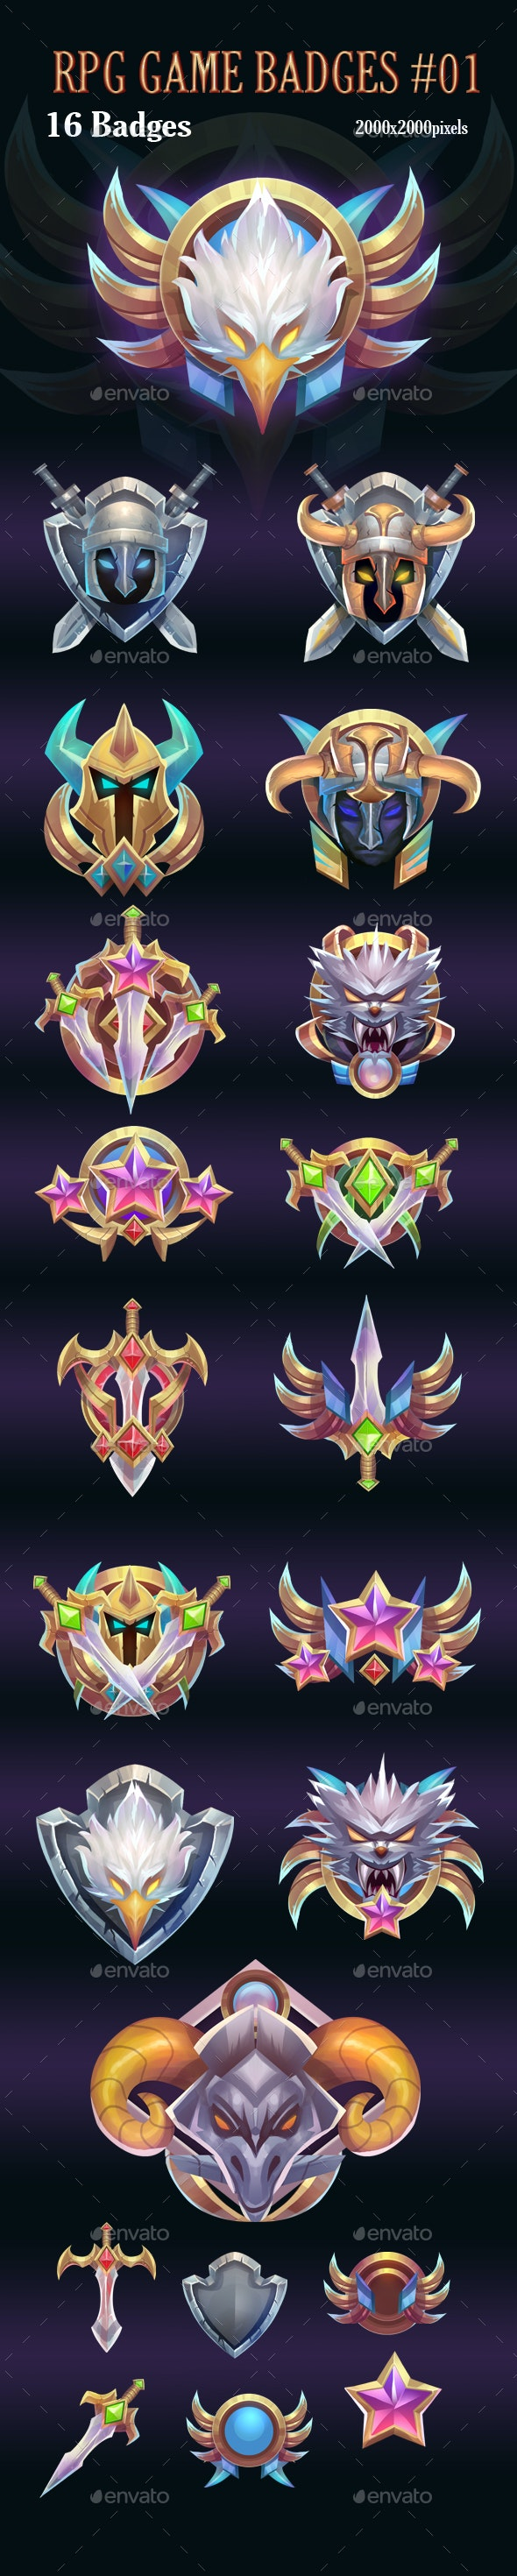 RPG Game Badges Pack 01 - Miscellaneous Game Assets